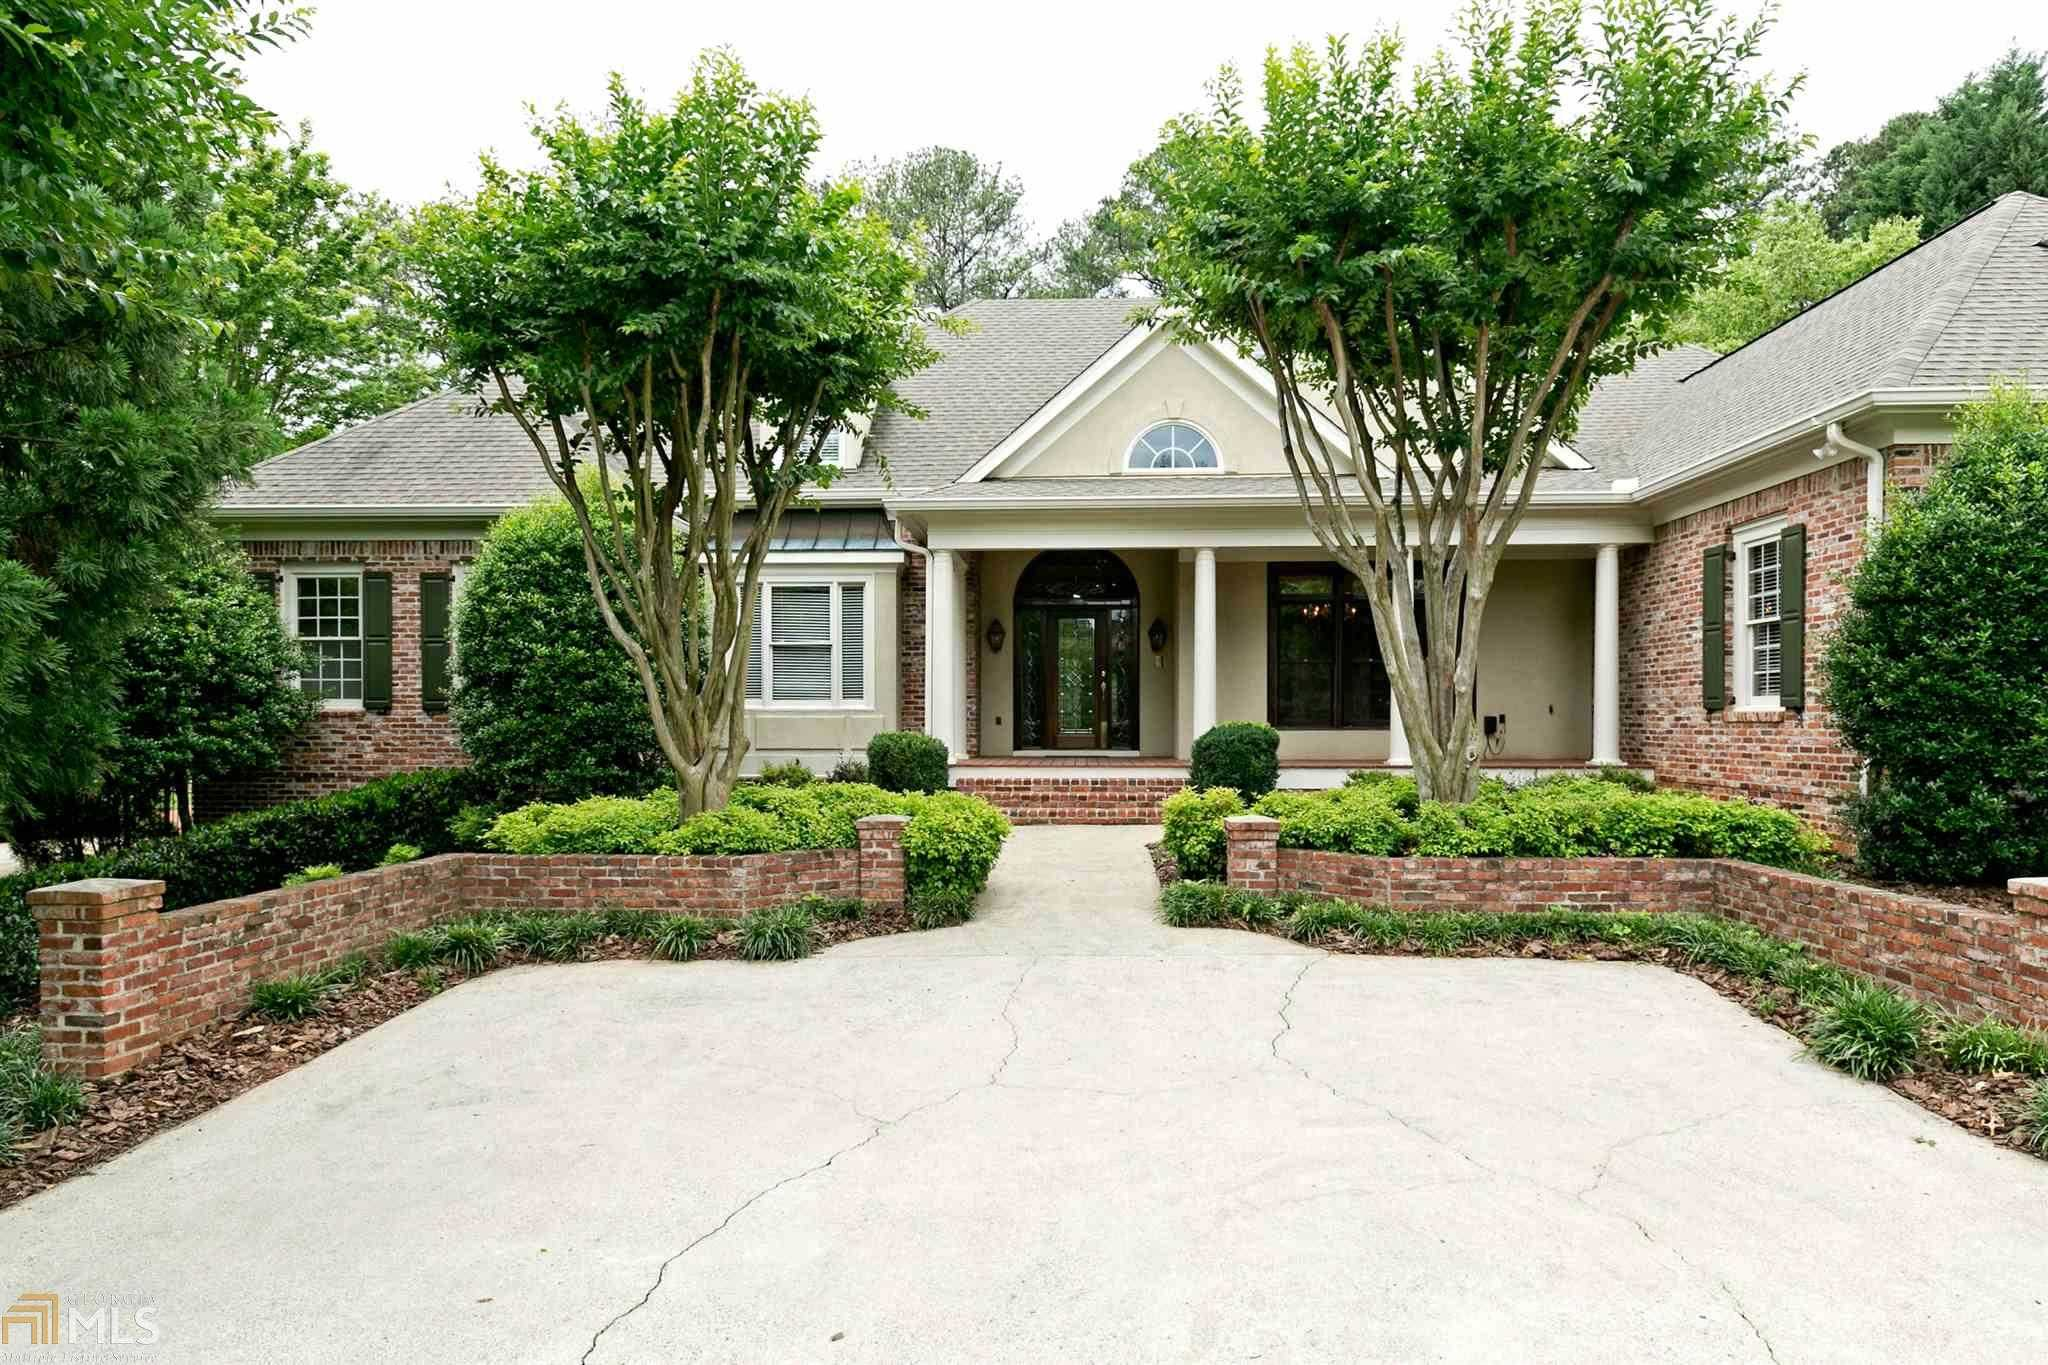 $1,025,000 - 9Br/6Ba -  for Sale in Marietta Country Club, Kennesaw